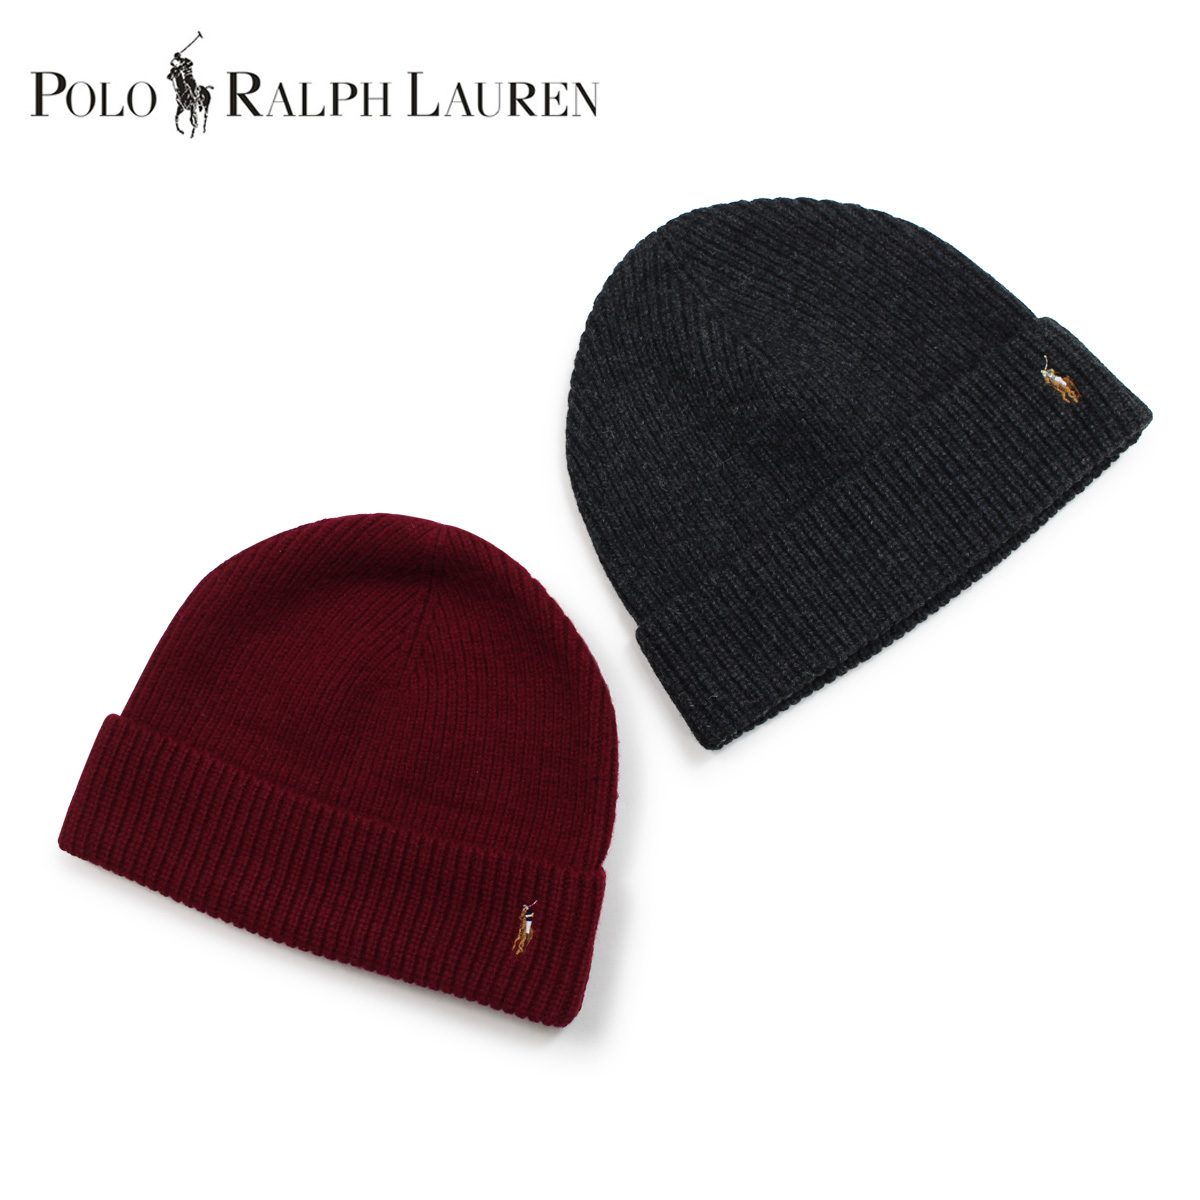 223e5b243b8 POLO RALPH LAUREN MERINO WOOL WATCH CAP polo Ralph Lauren knit hat knit cap  beanie men gap Dis merino wool charcoal Bordeaux 6F0101  1 15 Shinnyu load